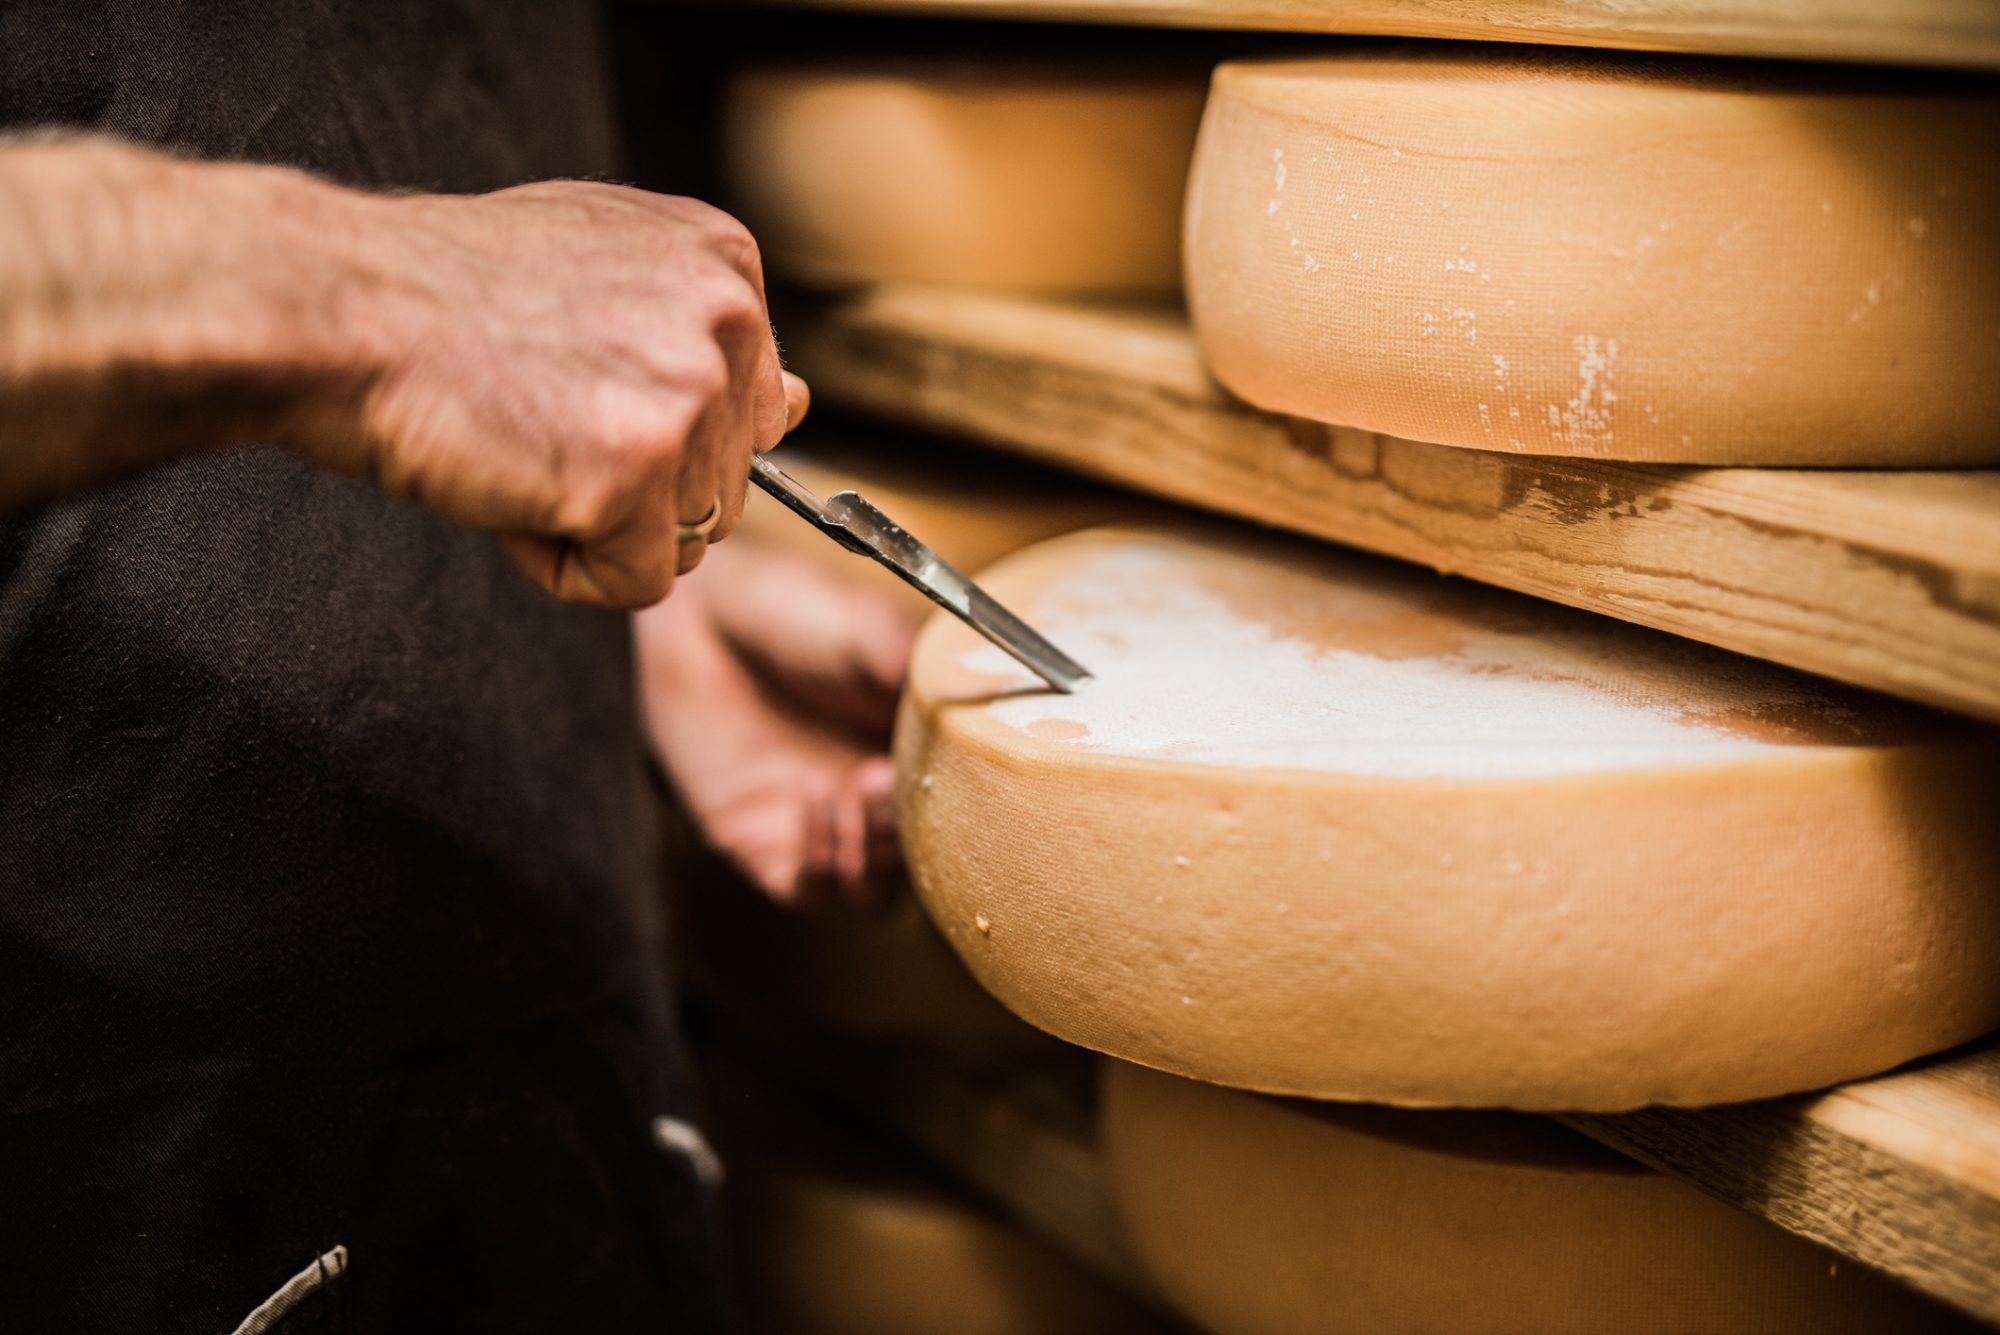 How a Professional Cheese Expert Grades Cheeses